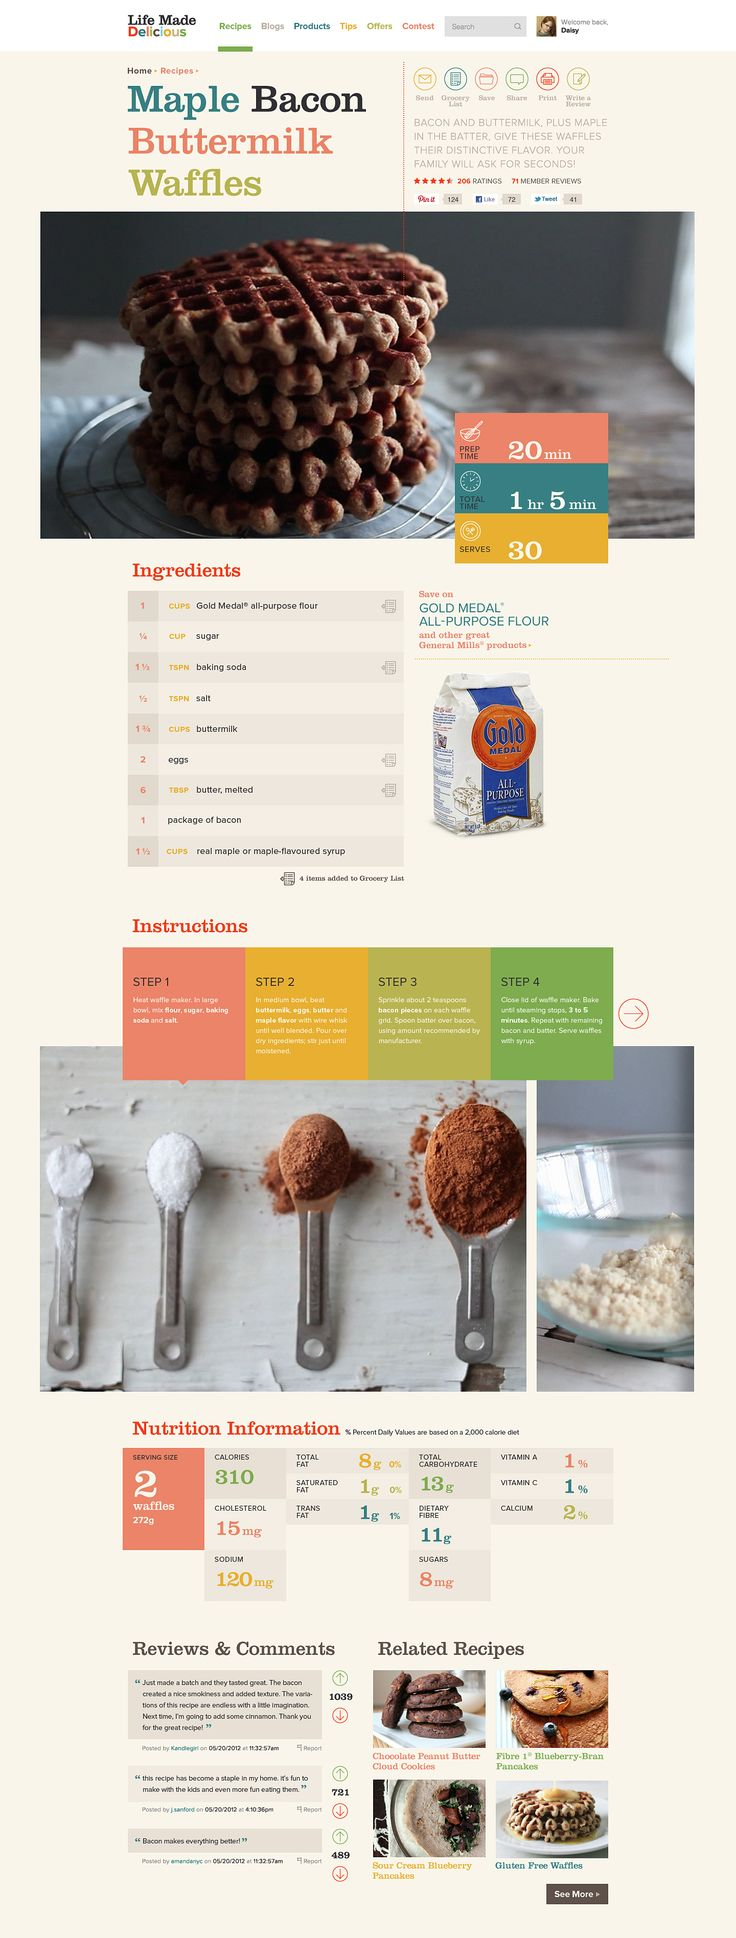 Life made delicious | #webdesign #it #web #design #layout #userinterface #website #webdesign < repinned by www.BlickeDeeler.de | Take a look at www.WebsiteDesign-Hamburg.de